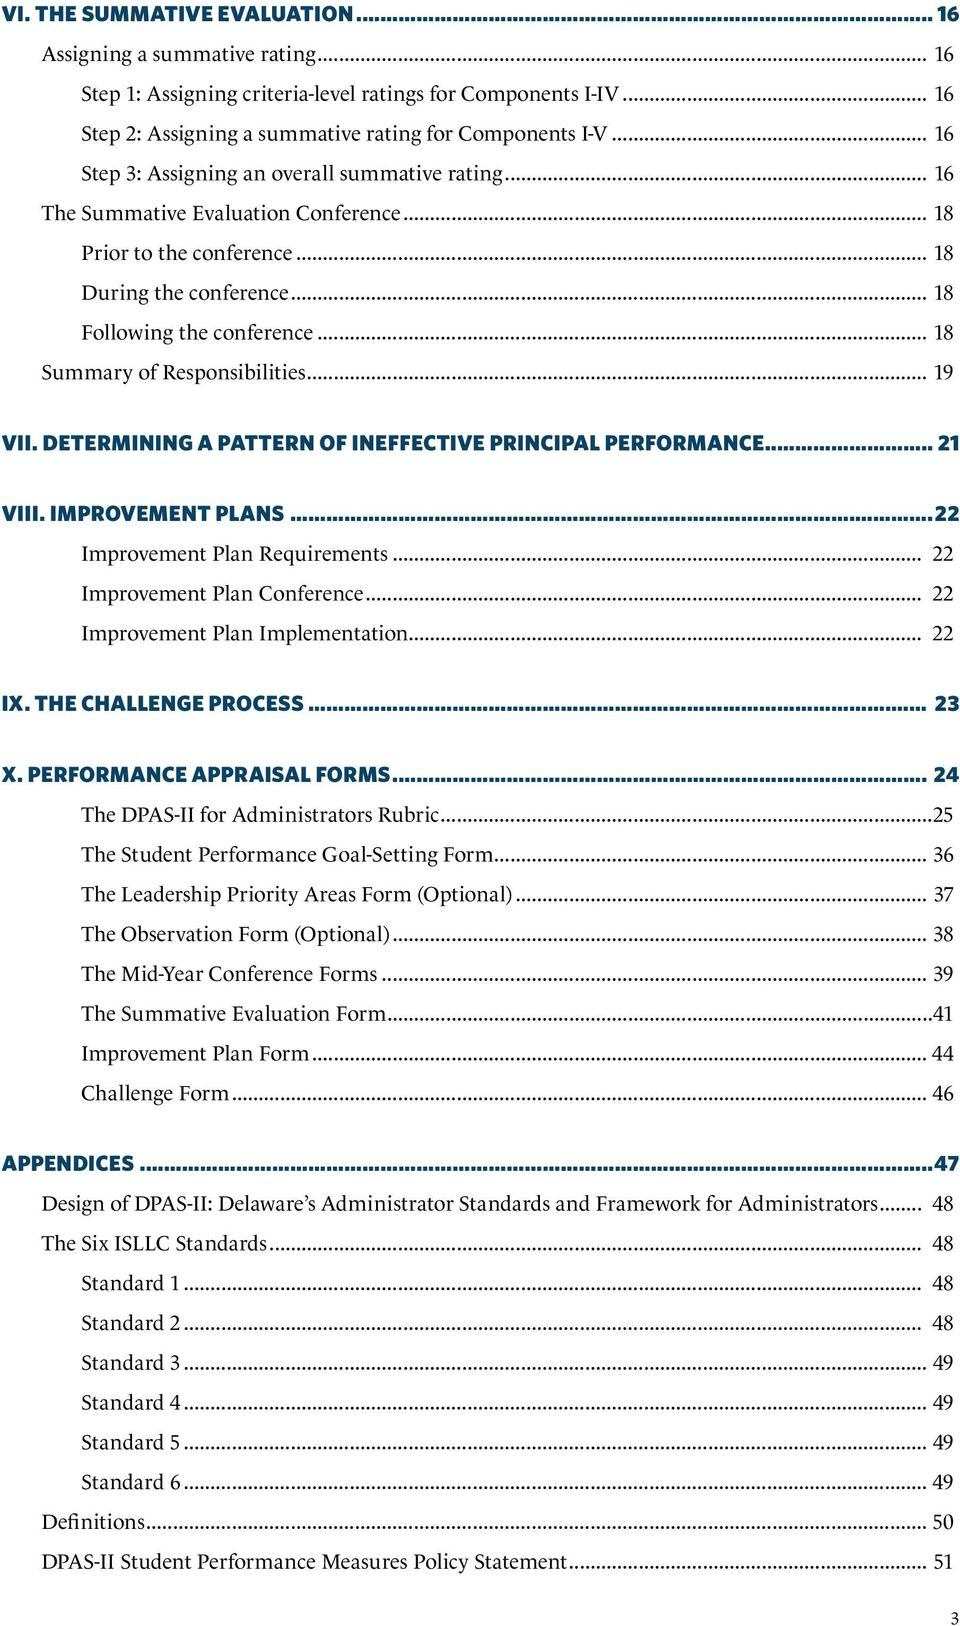 .. 18 Summary of Responsibilities... 19 VII. DETERMINING A PATTERN OF INEFFECTIVE PRINCIPAL PERFORMANCE... 21 VIII. IMPROVEMENT PLANS...22 Improvement Plan Requirements.